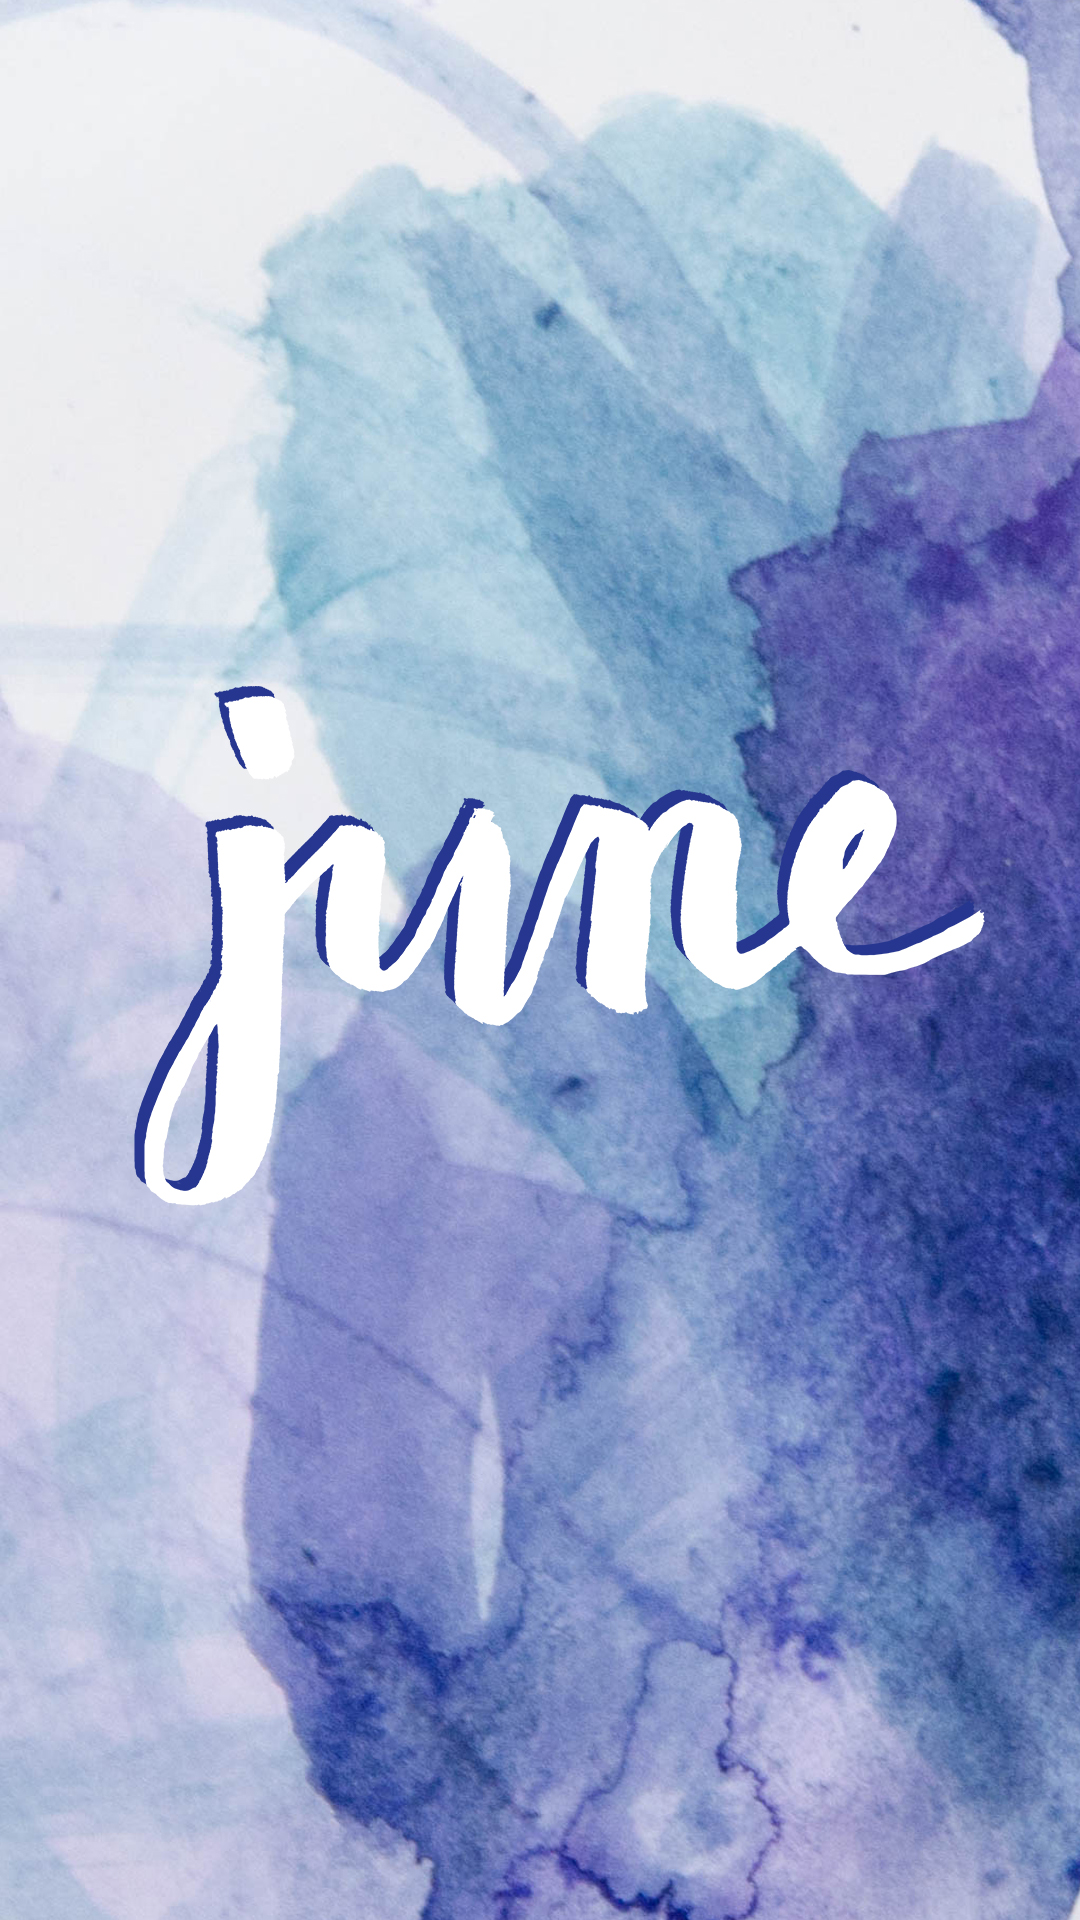 Watercolor Wallpaper Backgrounds Quote By Doing What You Love Tech Wallpapers For June Lemon